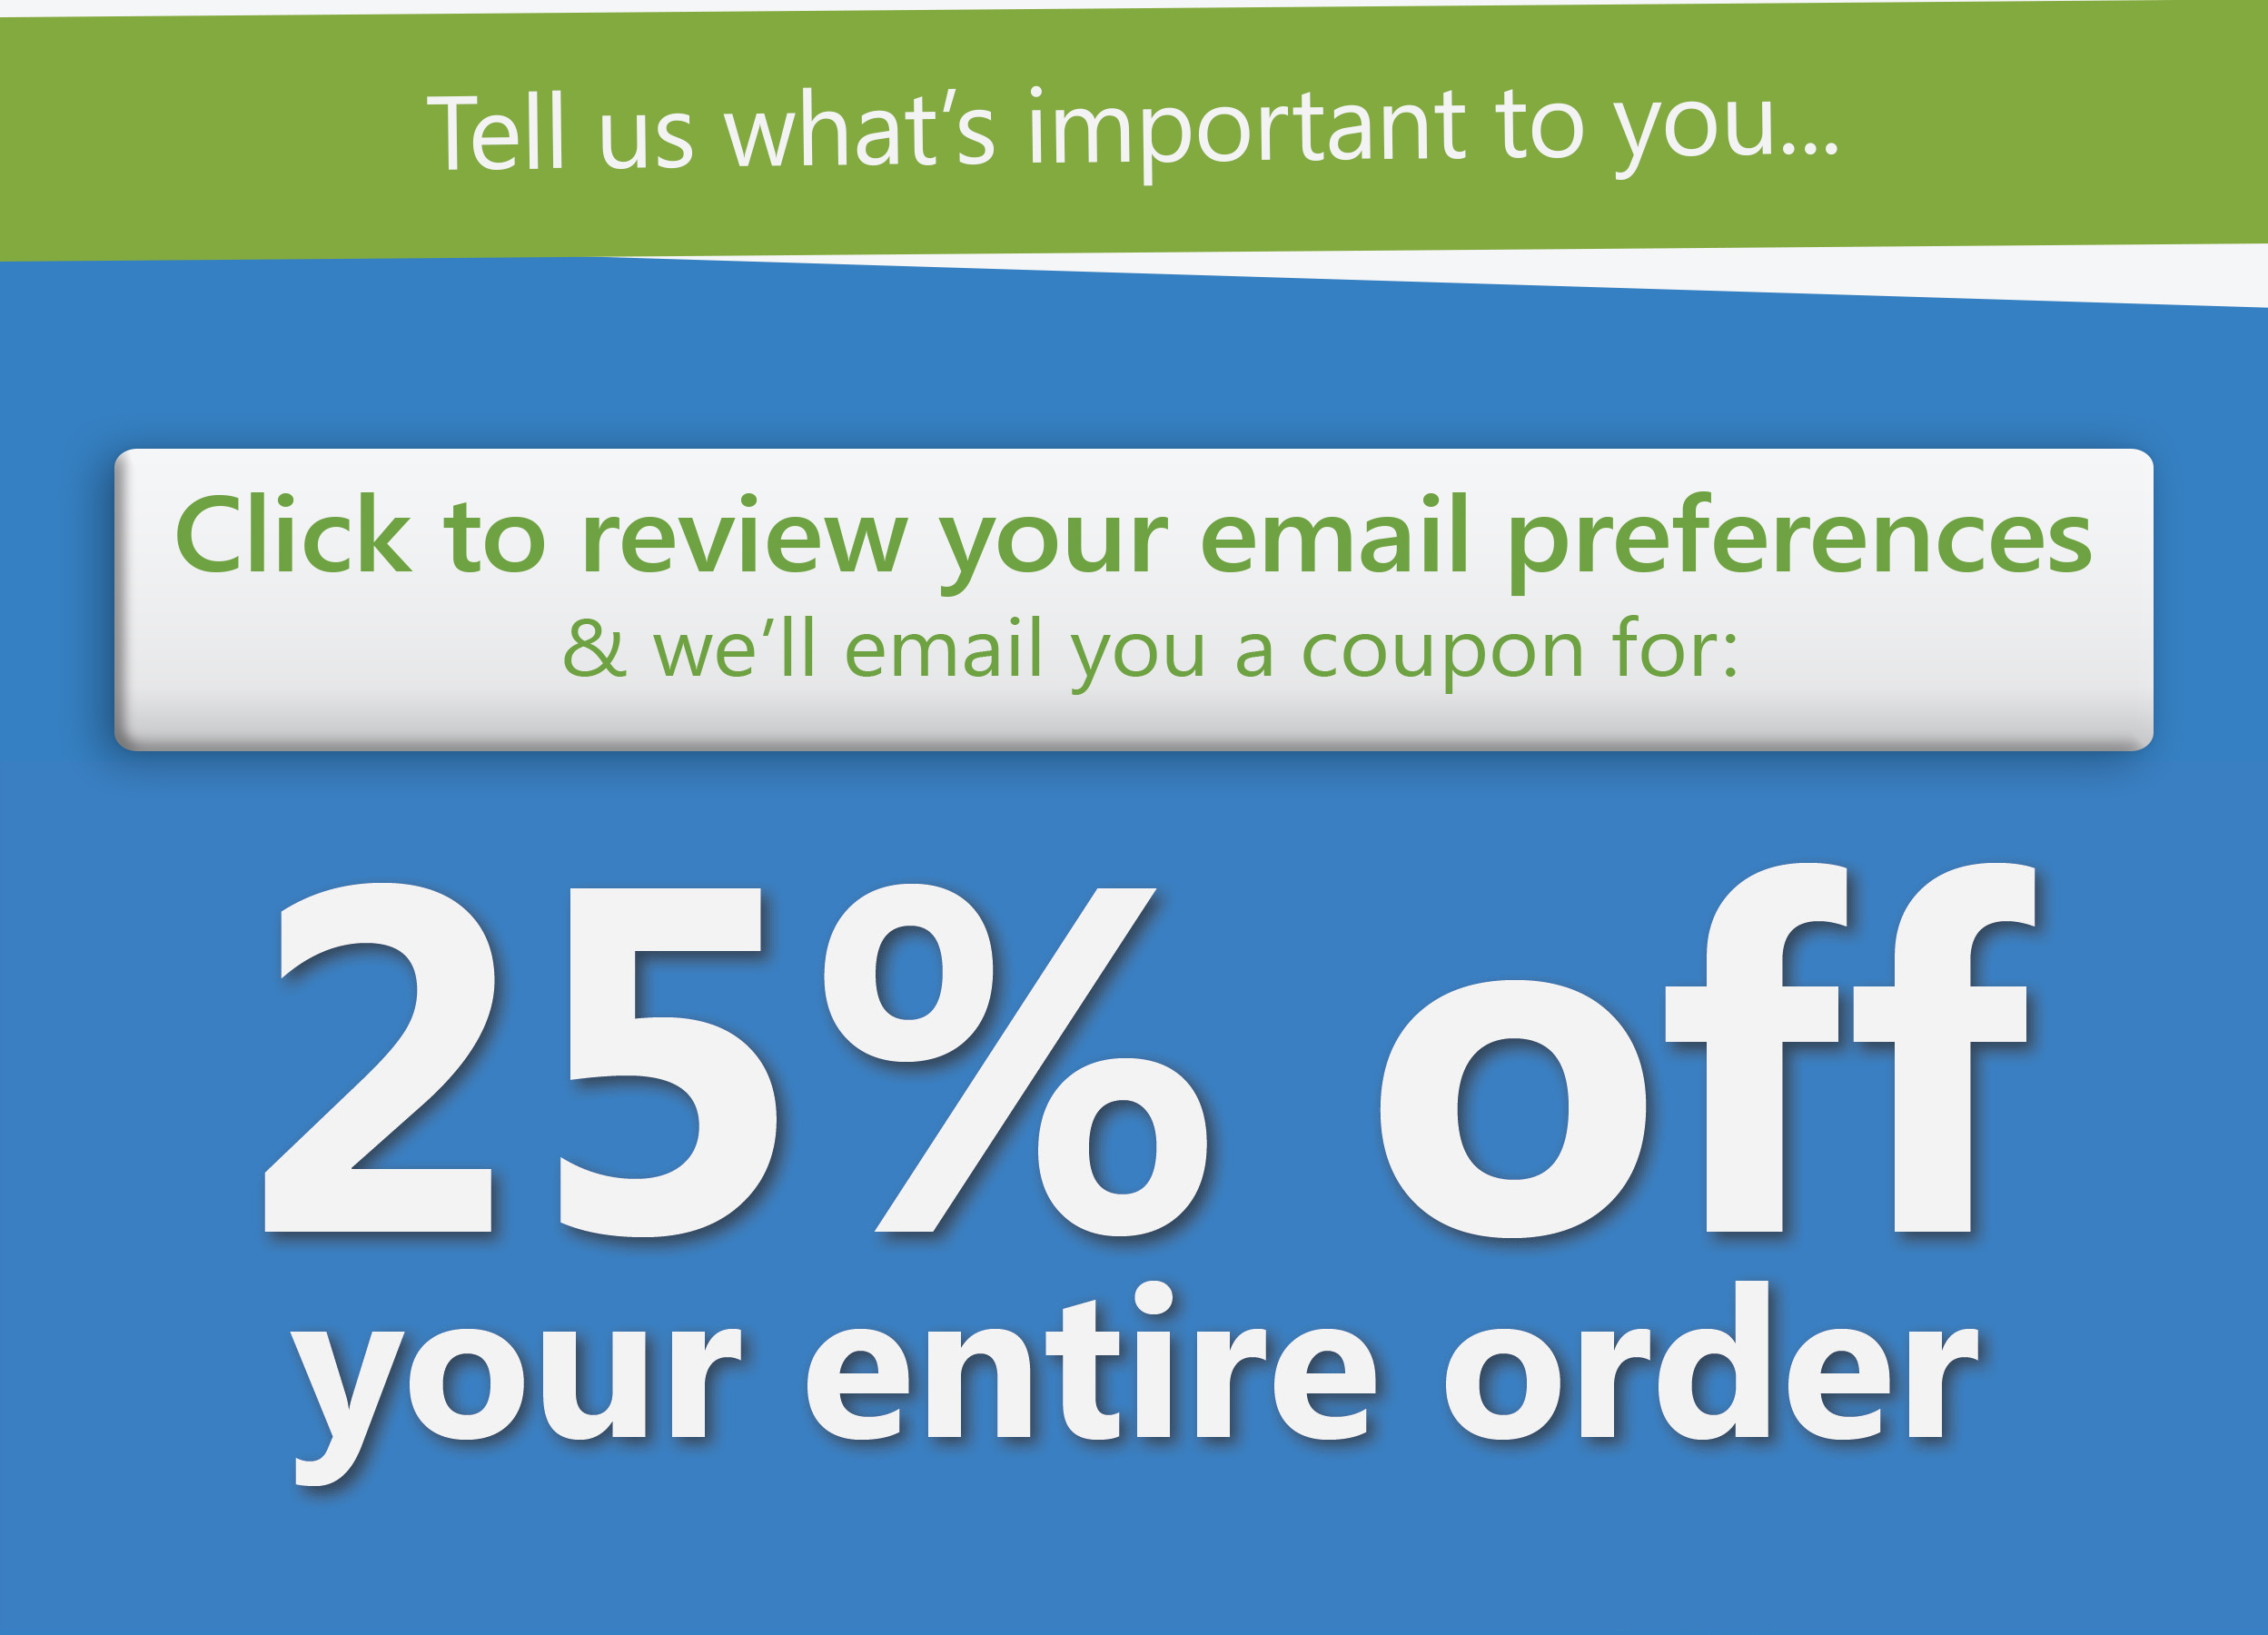 Tell us what's important to you.. Click to review your email preferences & we�ll email you a coupon for 25% off your entire order!